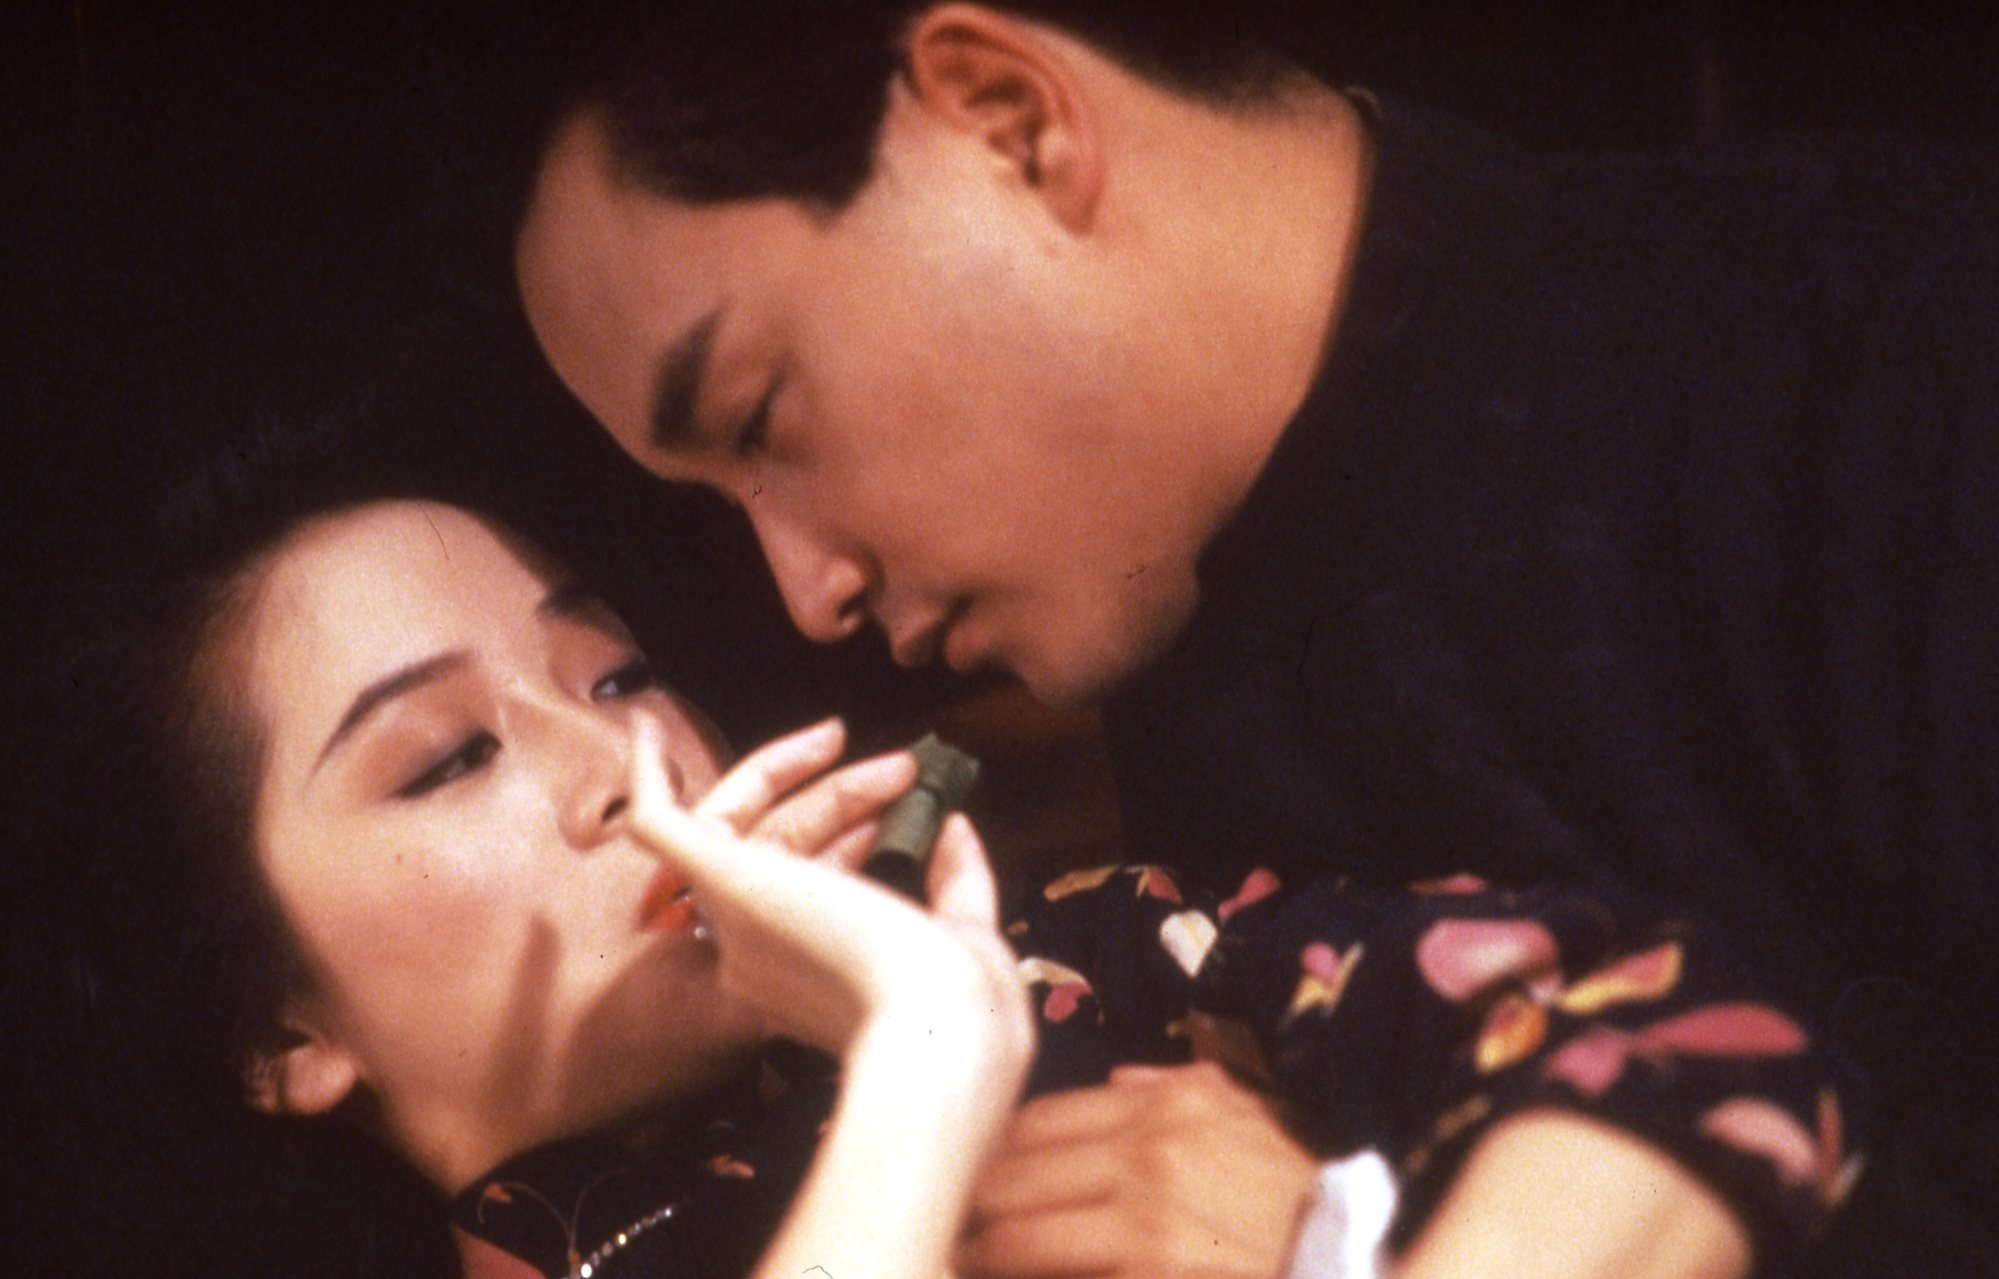 Leslie Cheung and Anita Mui in a still from 'Rouge' (1988), directed by Stanley Kwan. Photo: Handout